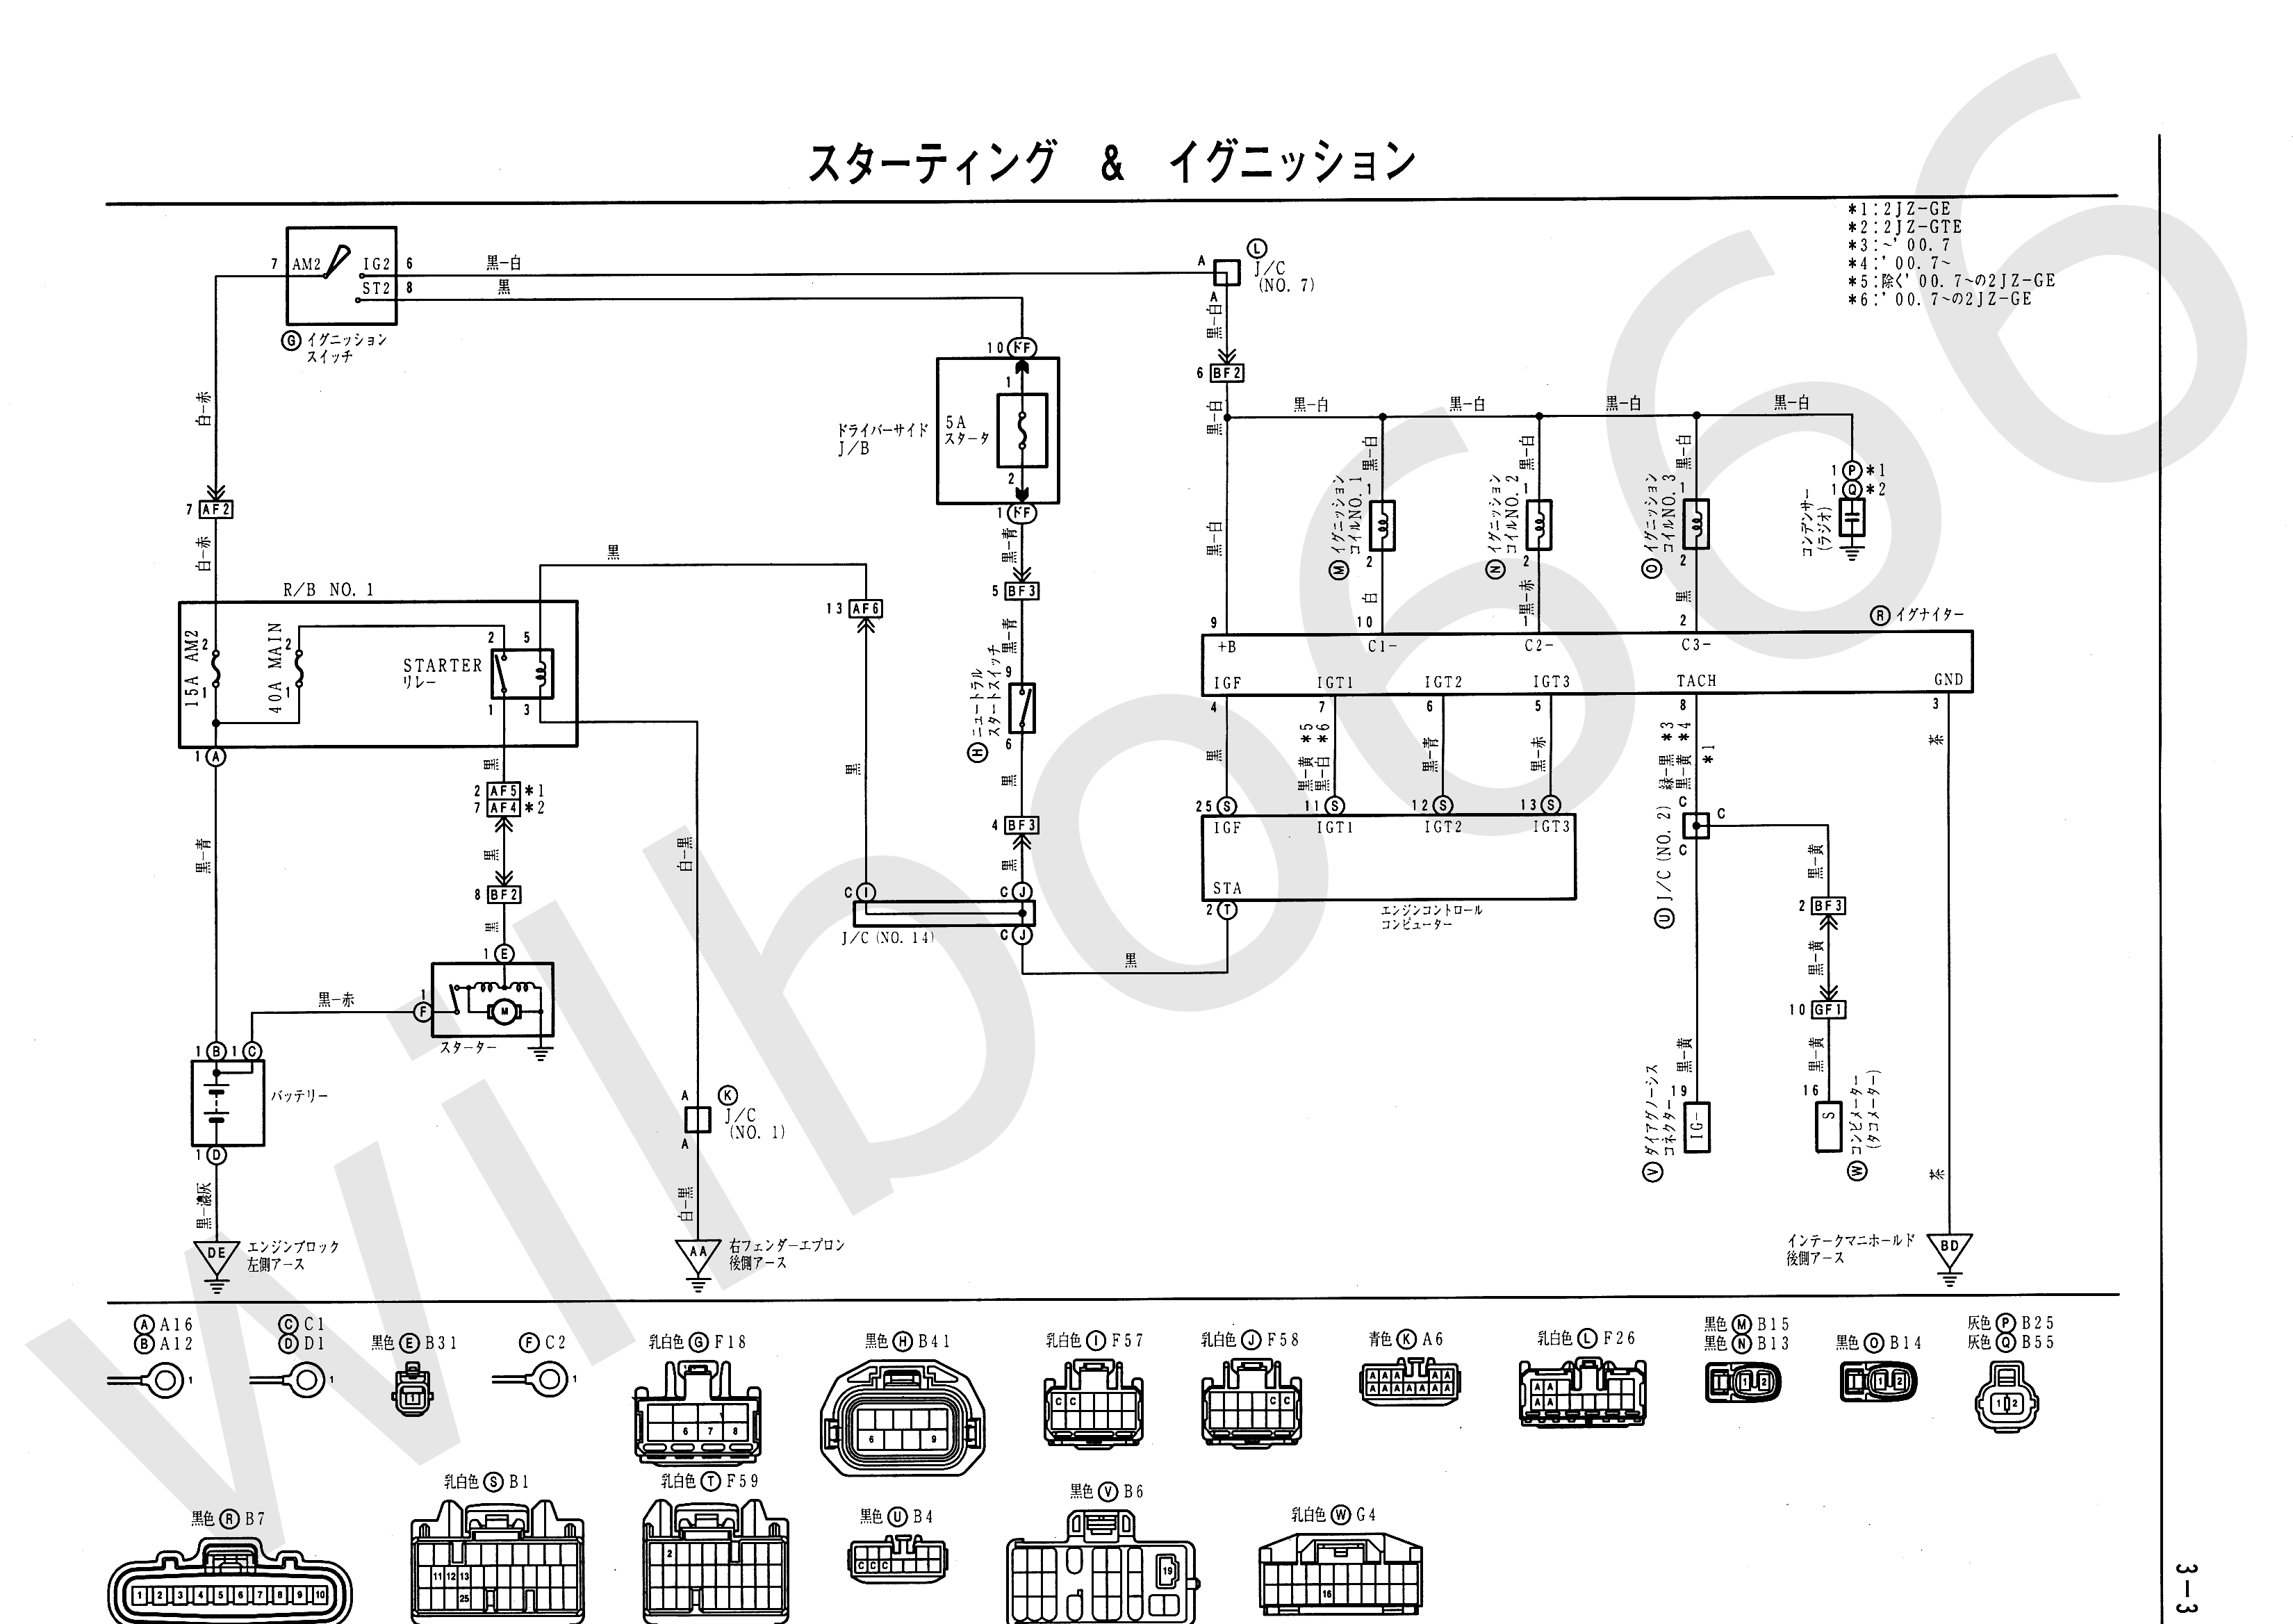 JZS161 Electrical Wiring Diagram 6748505 3 3 wilbo666 2jz gte vvti jzs161 aristo engine wiring  at edmiracle.co